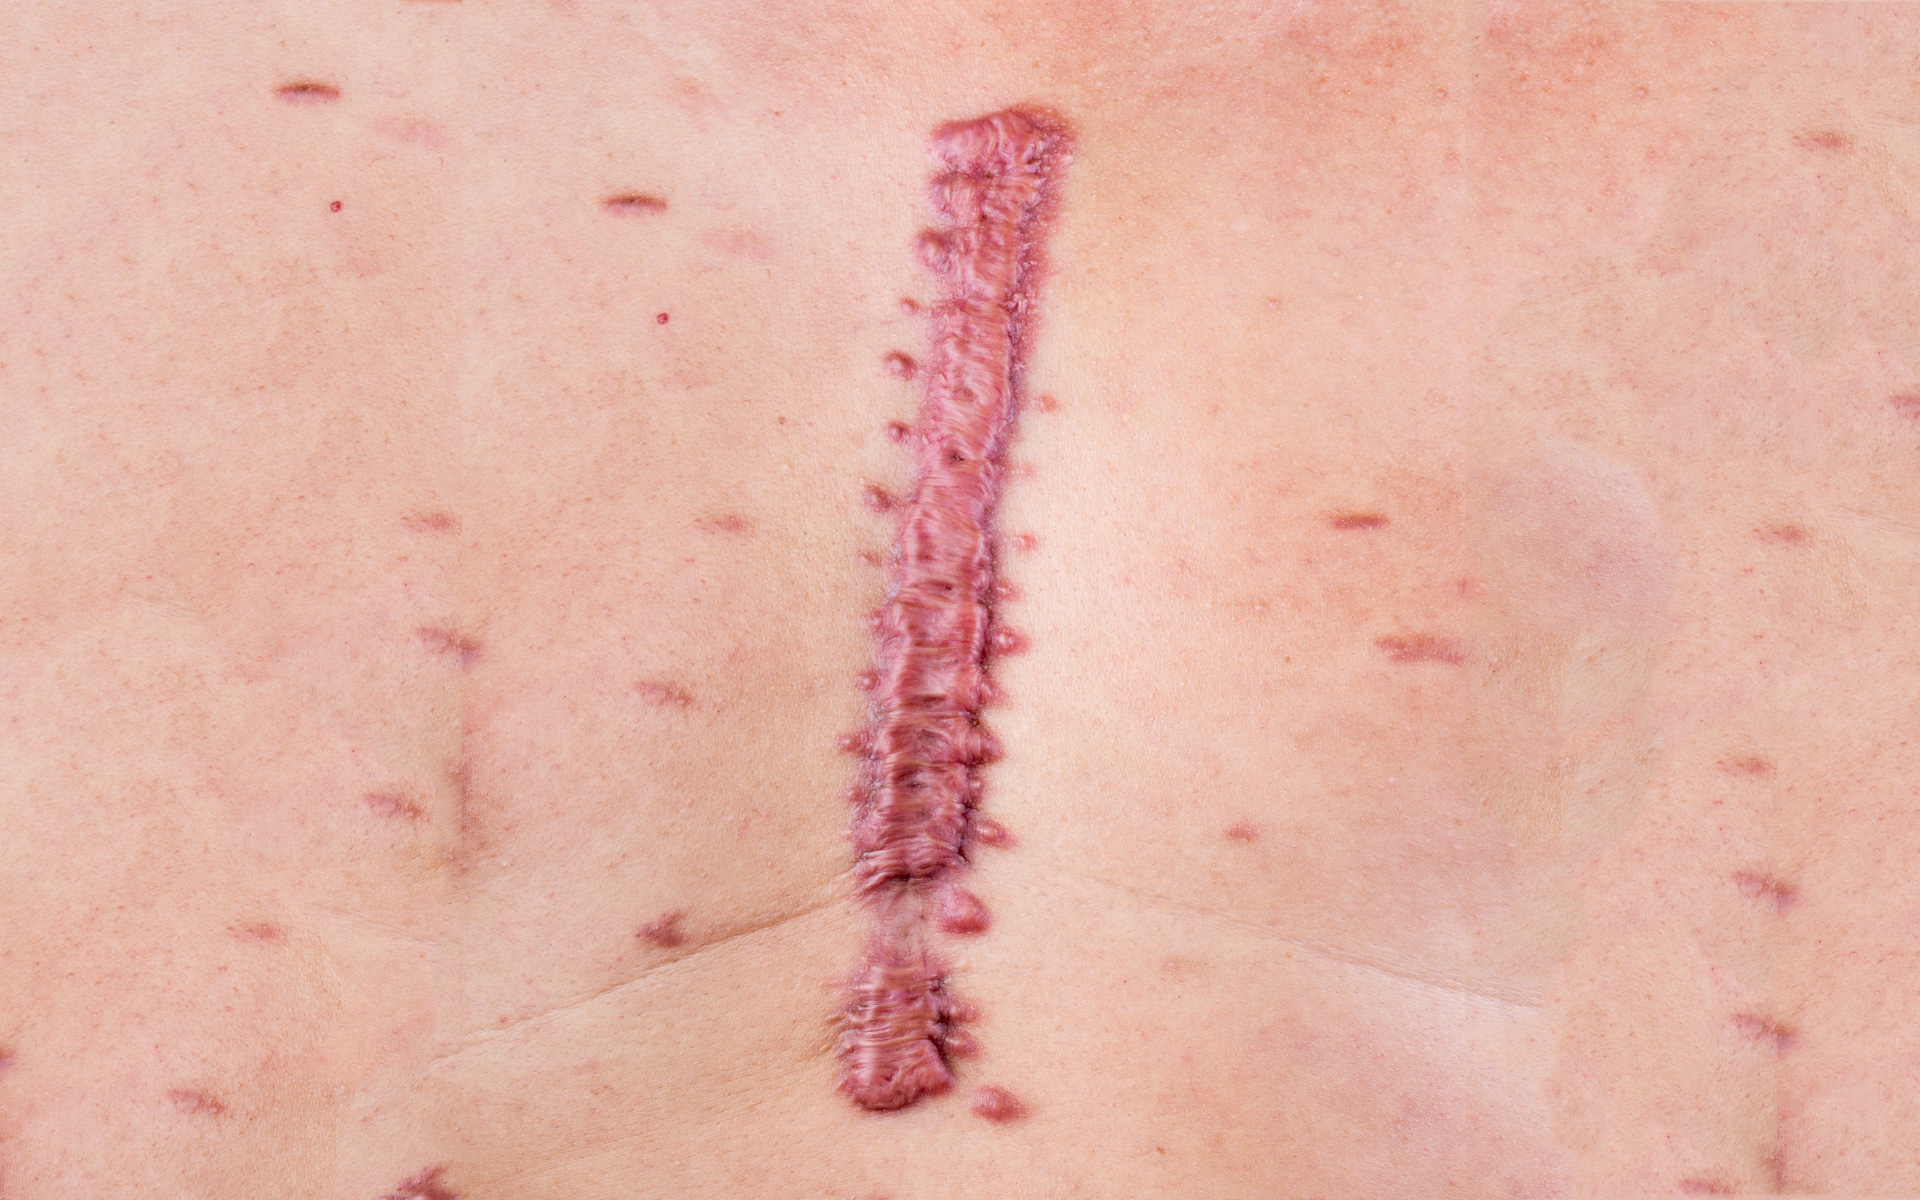 KELOID REMOVAL